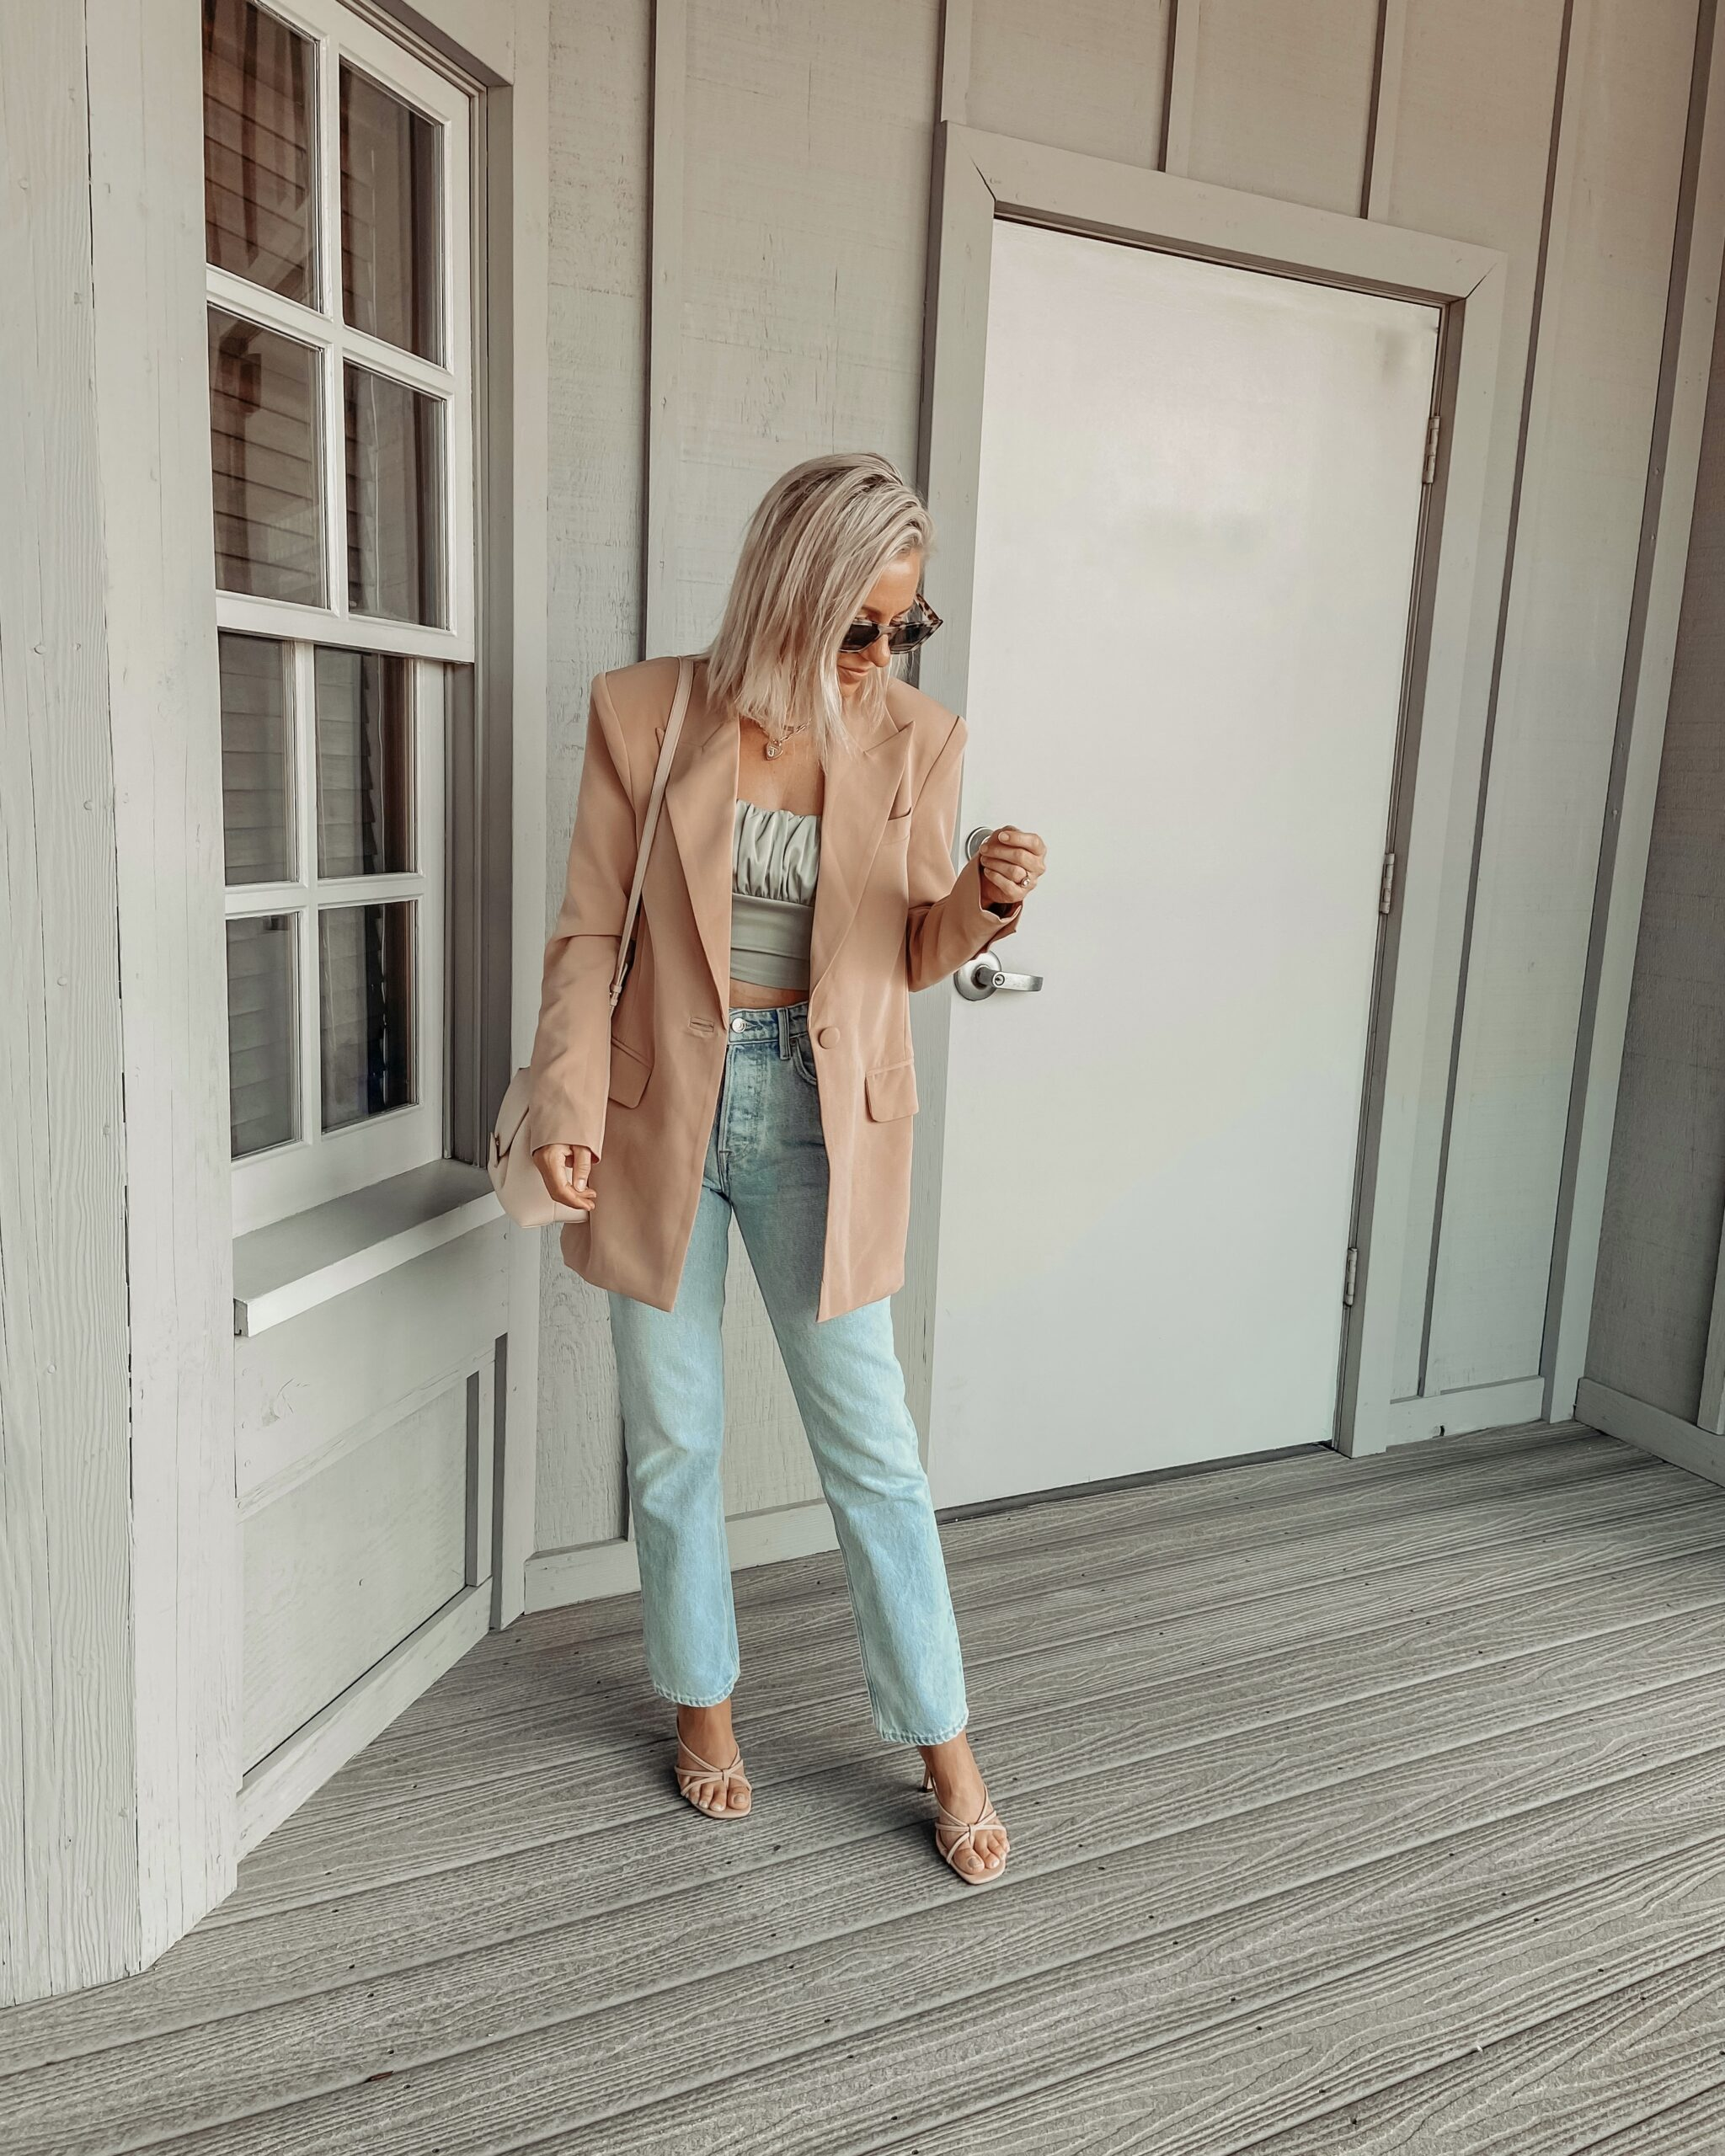 CHIC BLAZER STYLED 2 WAYS: Jaclyn De Leon Style- sharing a chic oversized blazer and two easy ways to style it. Paired with denim or a dress. Casual or dressed up. Fall outfit inspo